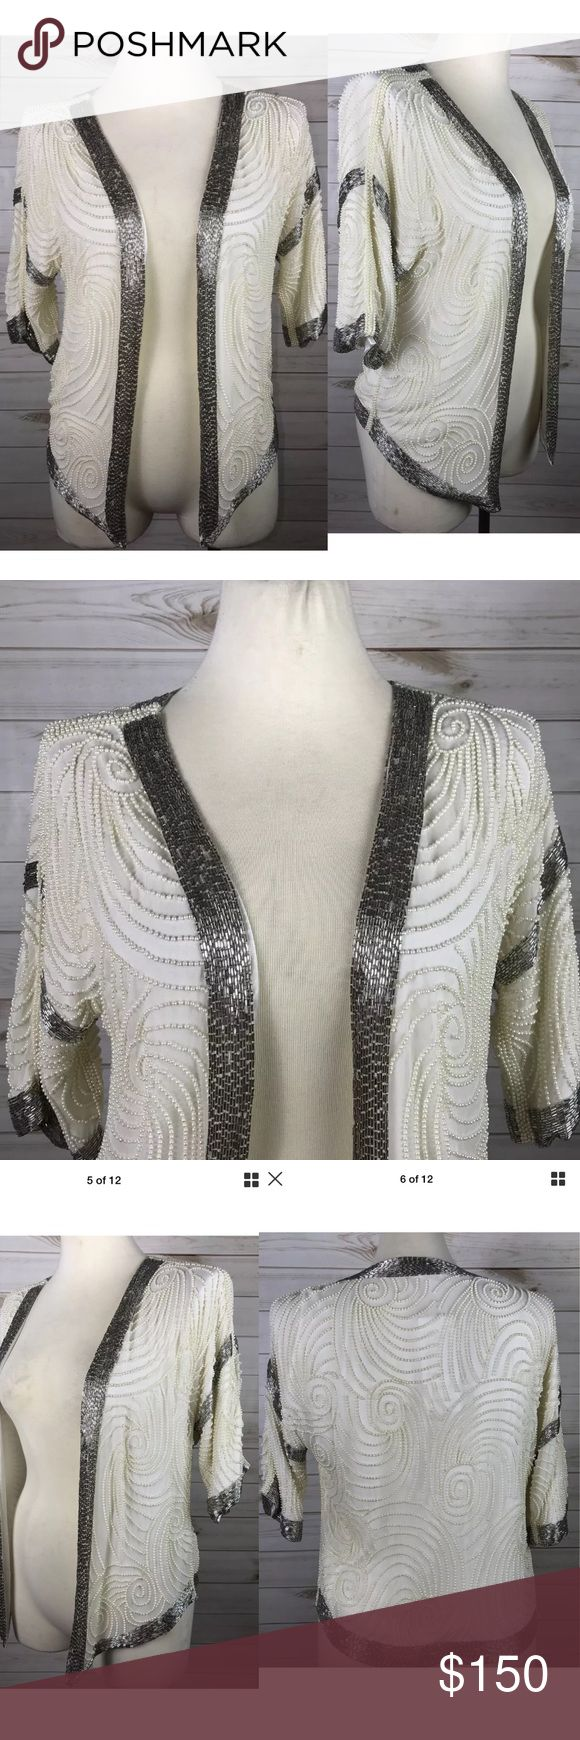 Parker Pearl Beaded  Sequin Ivory Jacket Parker Women's Pearl Beaded 3/4 Sleeve Open Jacket. Ruching to Sleeves. Size small. This is a sample and is rare. Satin lining some cosmetic dirt to the inner lining shown in pictures. One Beaded on the side is lose but no other defects noted.   Bust 37 inches  Sleeve length 10 inches  Total length 22 inches Parker Jackets & Coats